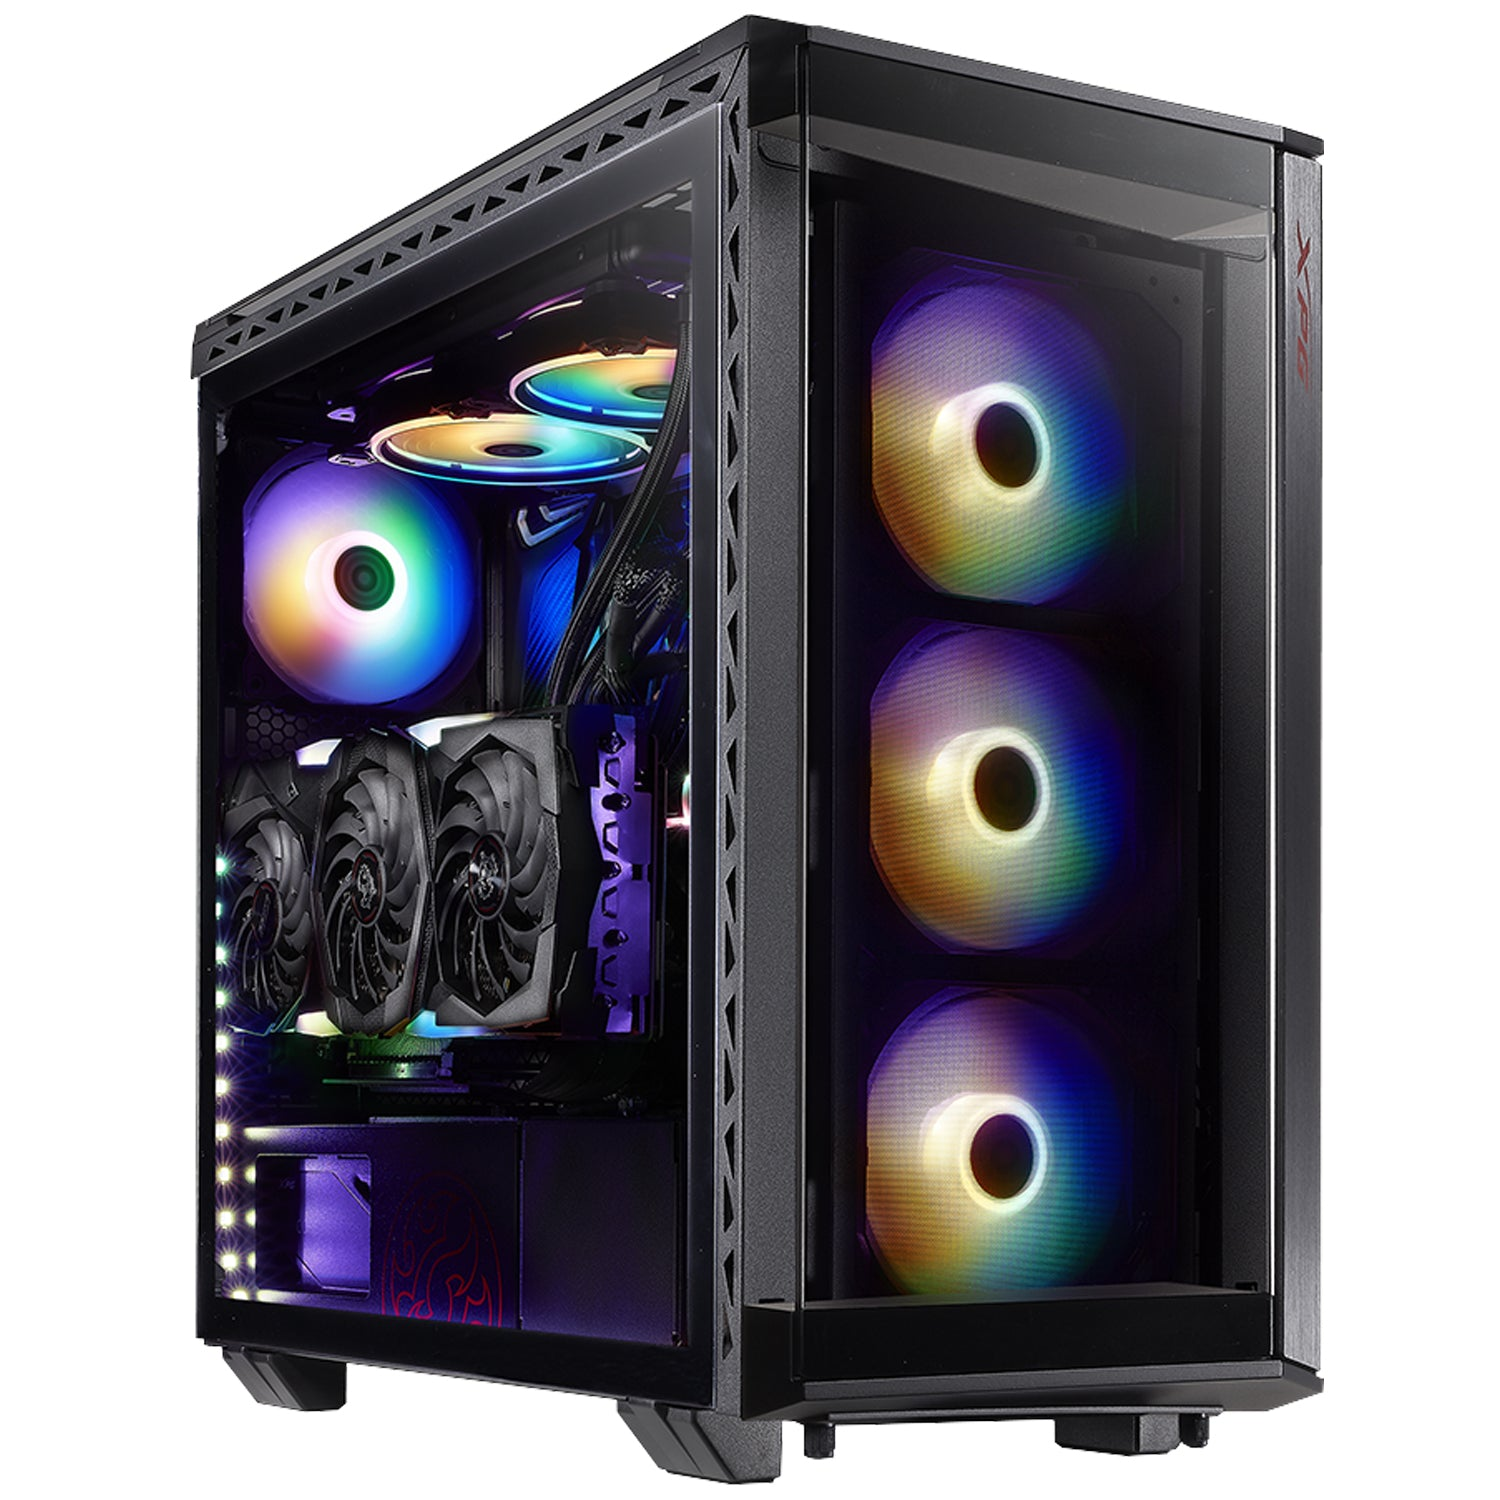 XPG BATTLE CRUISER Mid-Tower Gaming Chassis